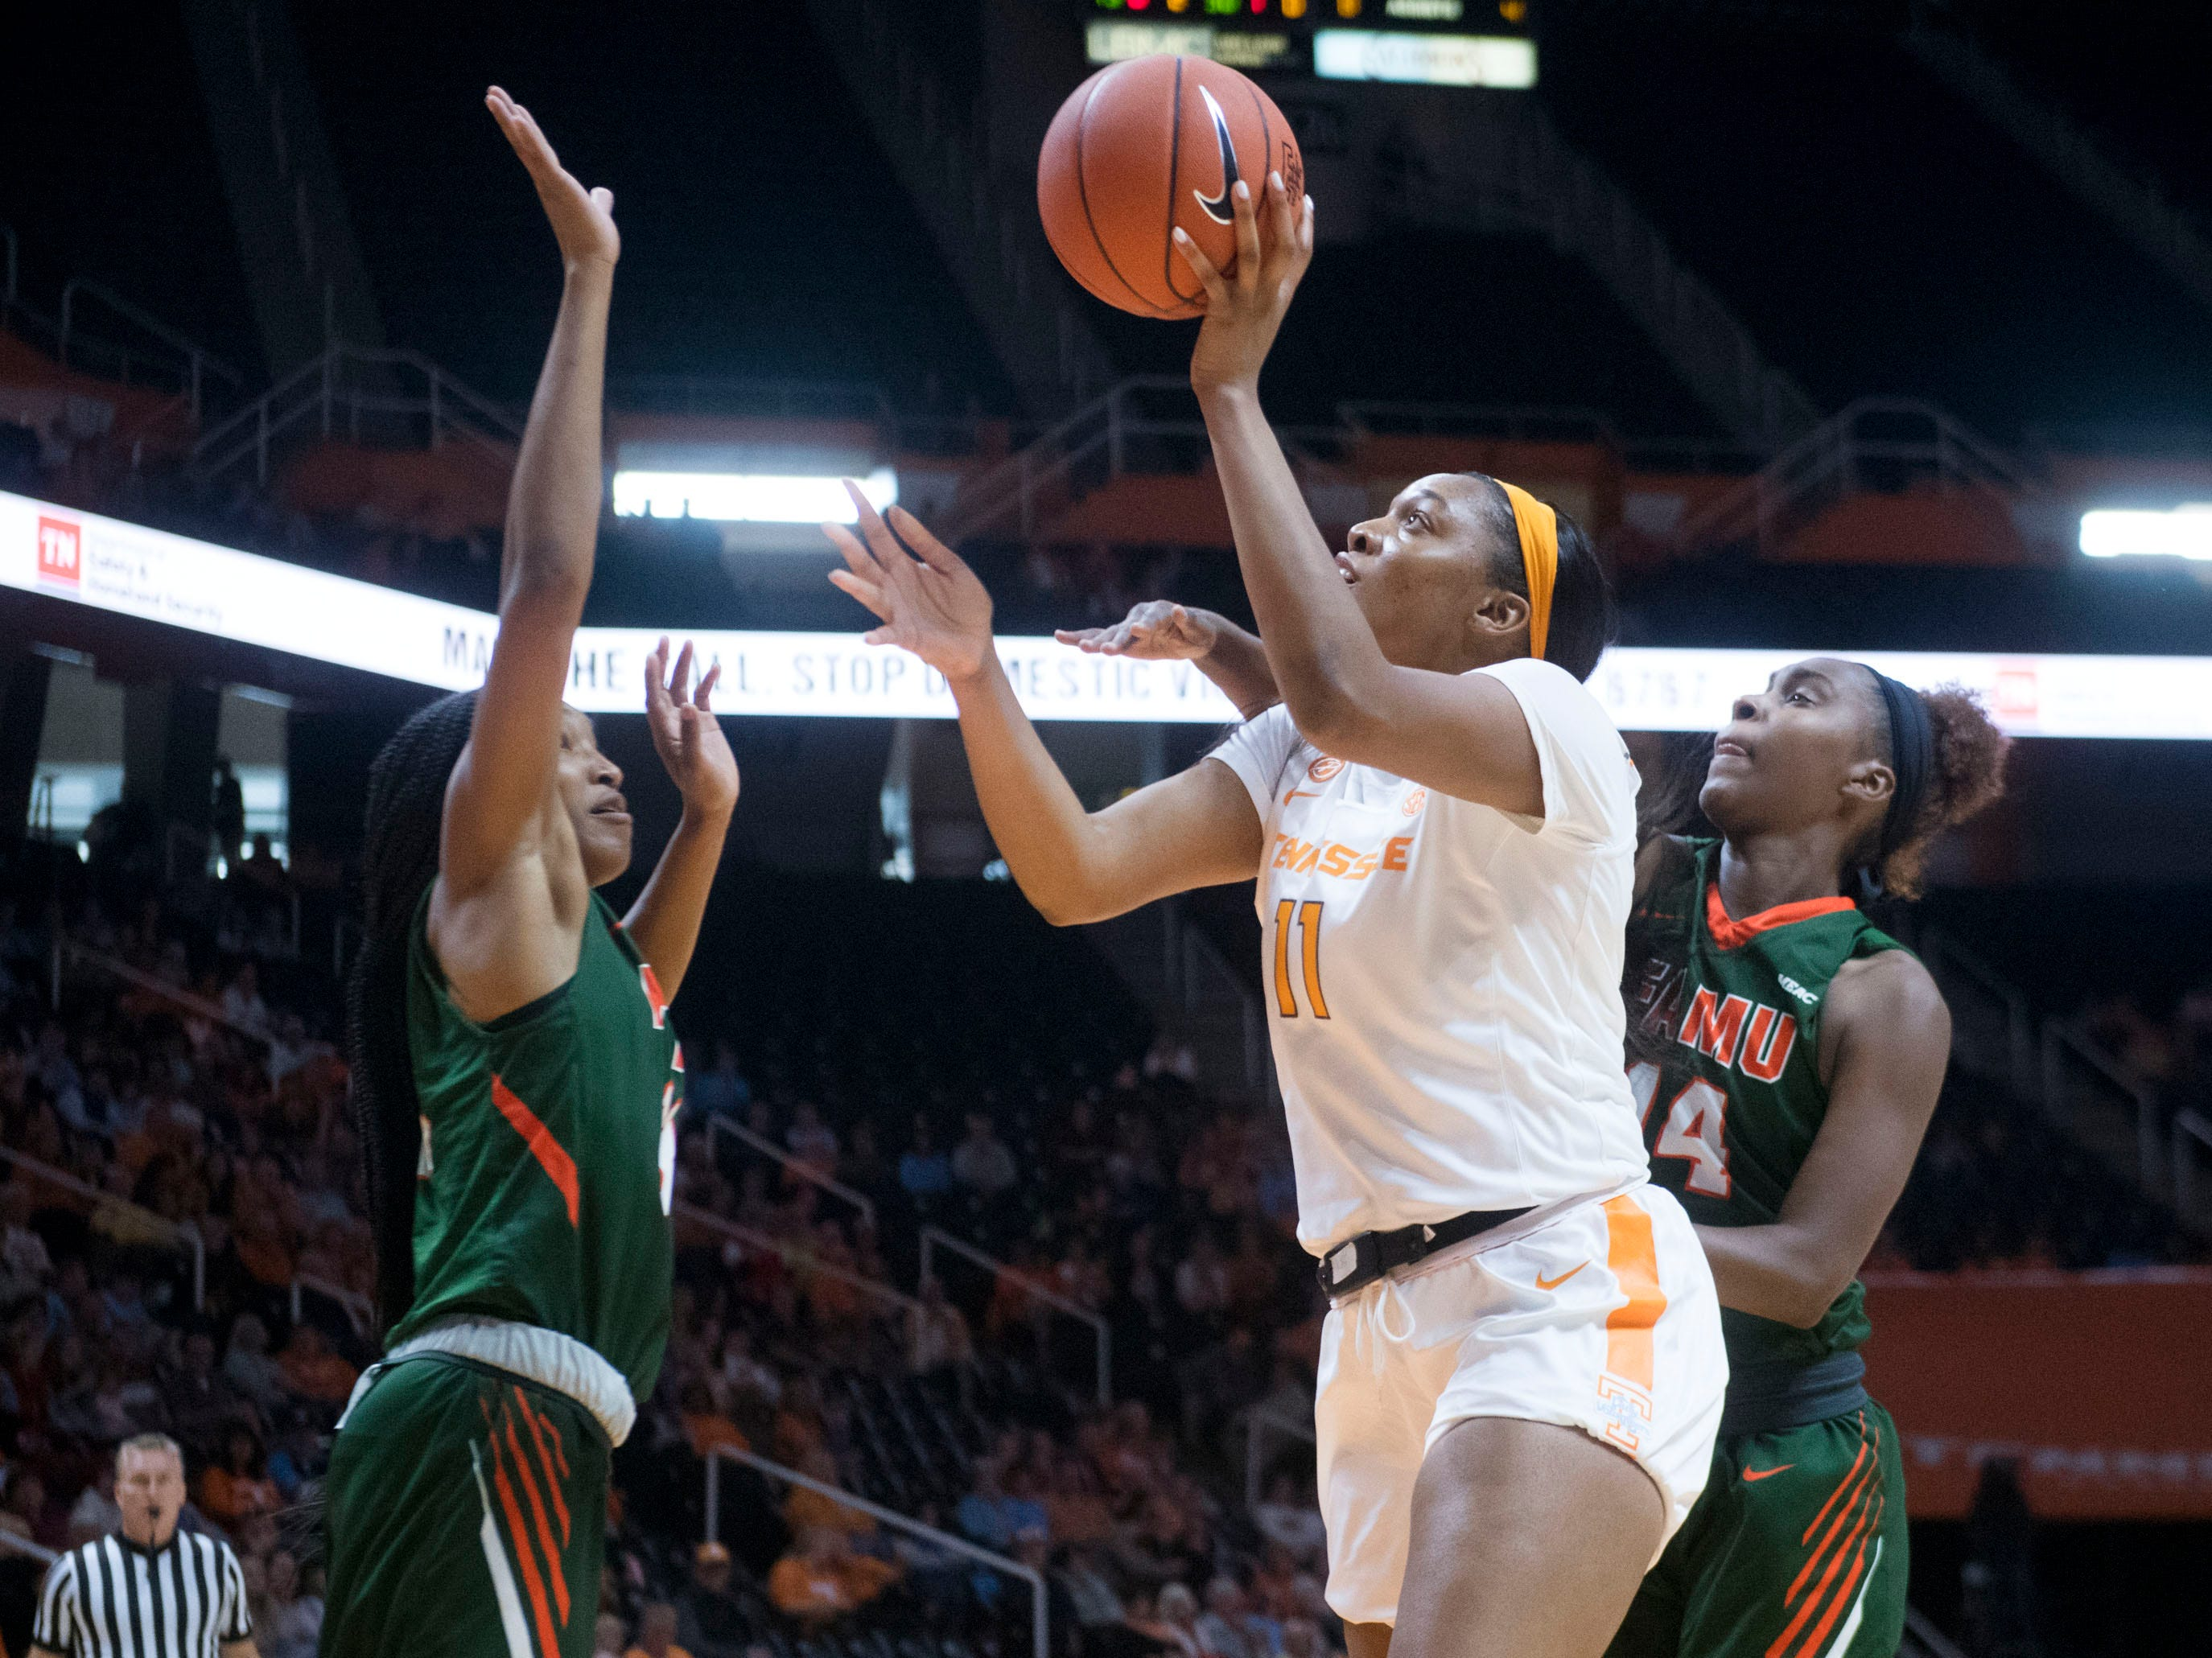 Tennessee's Kasiyahna Kushkituah (11) attempts to score while defended by Florida A&M's Dy'Manee Royal (13) and Tyra James (14) on Sunday, November 18, 2018 at Thompson-Boling Arena.